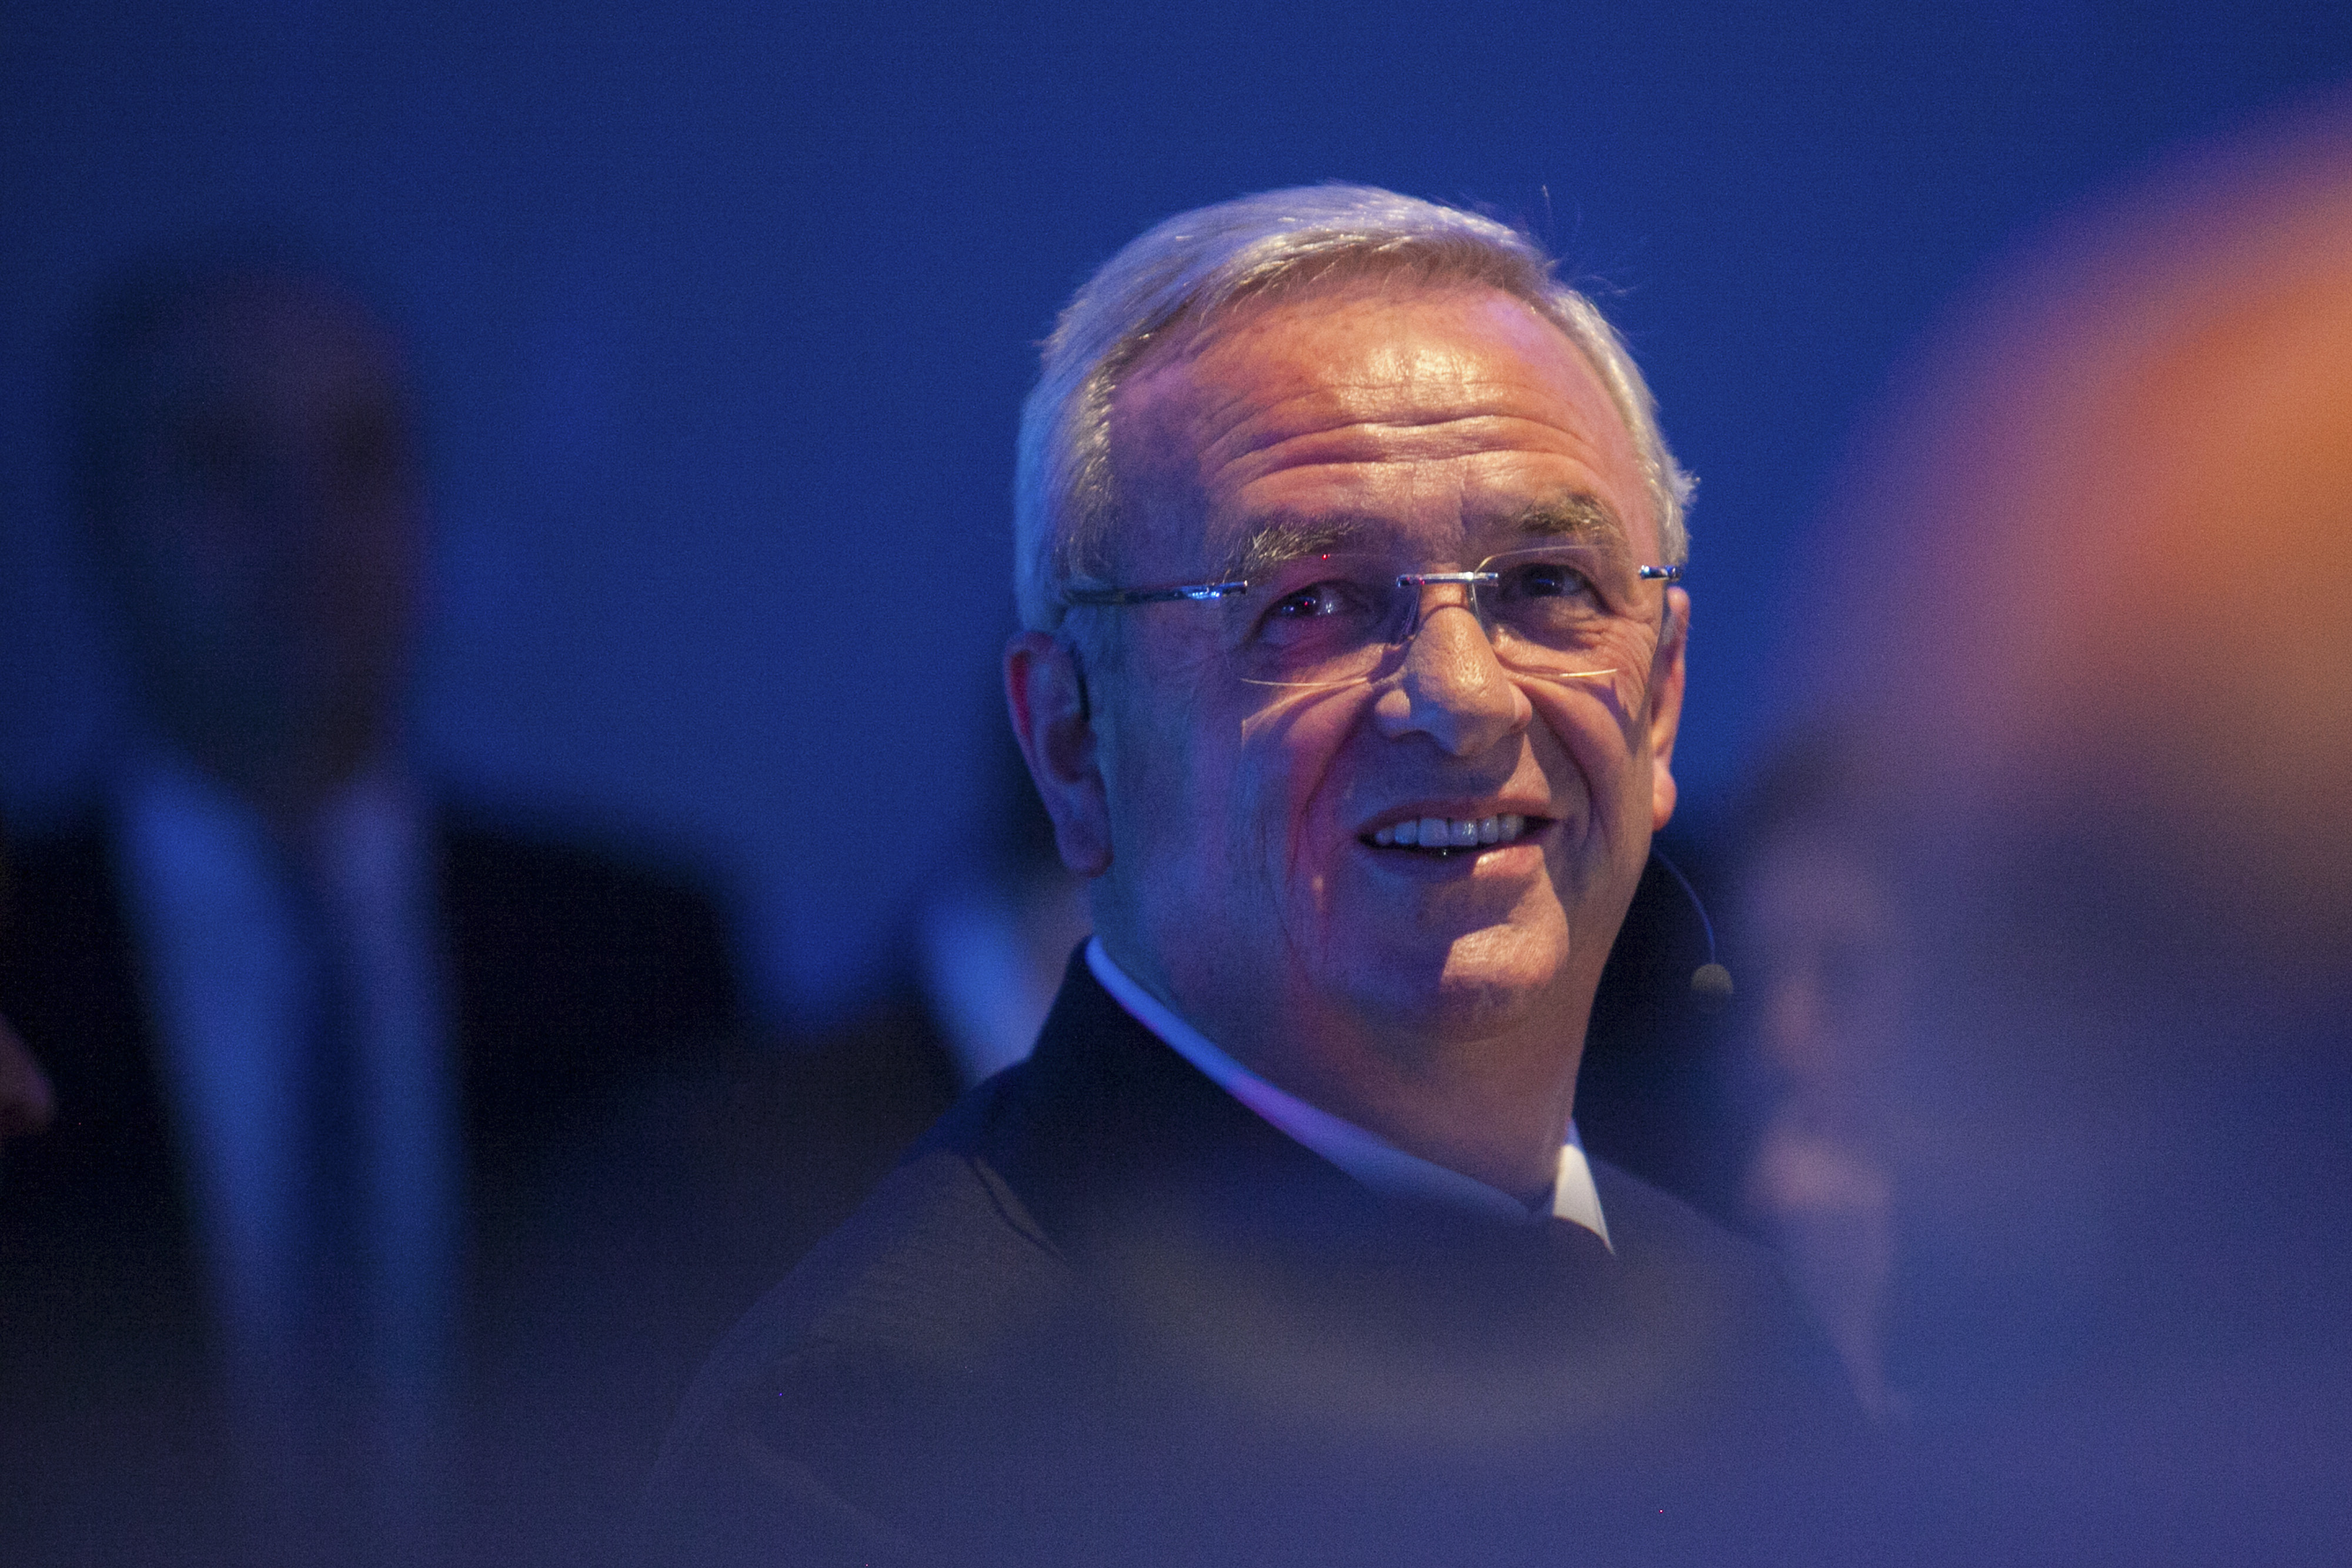 Volkswagen Group Forum DRIVE opens in Berlin. Opening event. Dr. Martin Winterkorn CEO VW Group, near the  stage  before the opening ceremony.  Berlin. Germany. 28.14.2015. Photo: Krisztian Bocsi